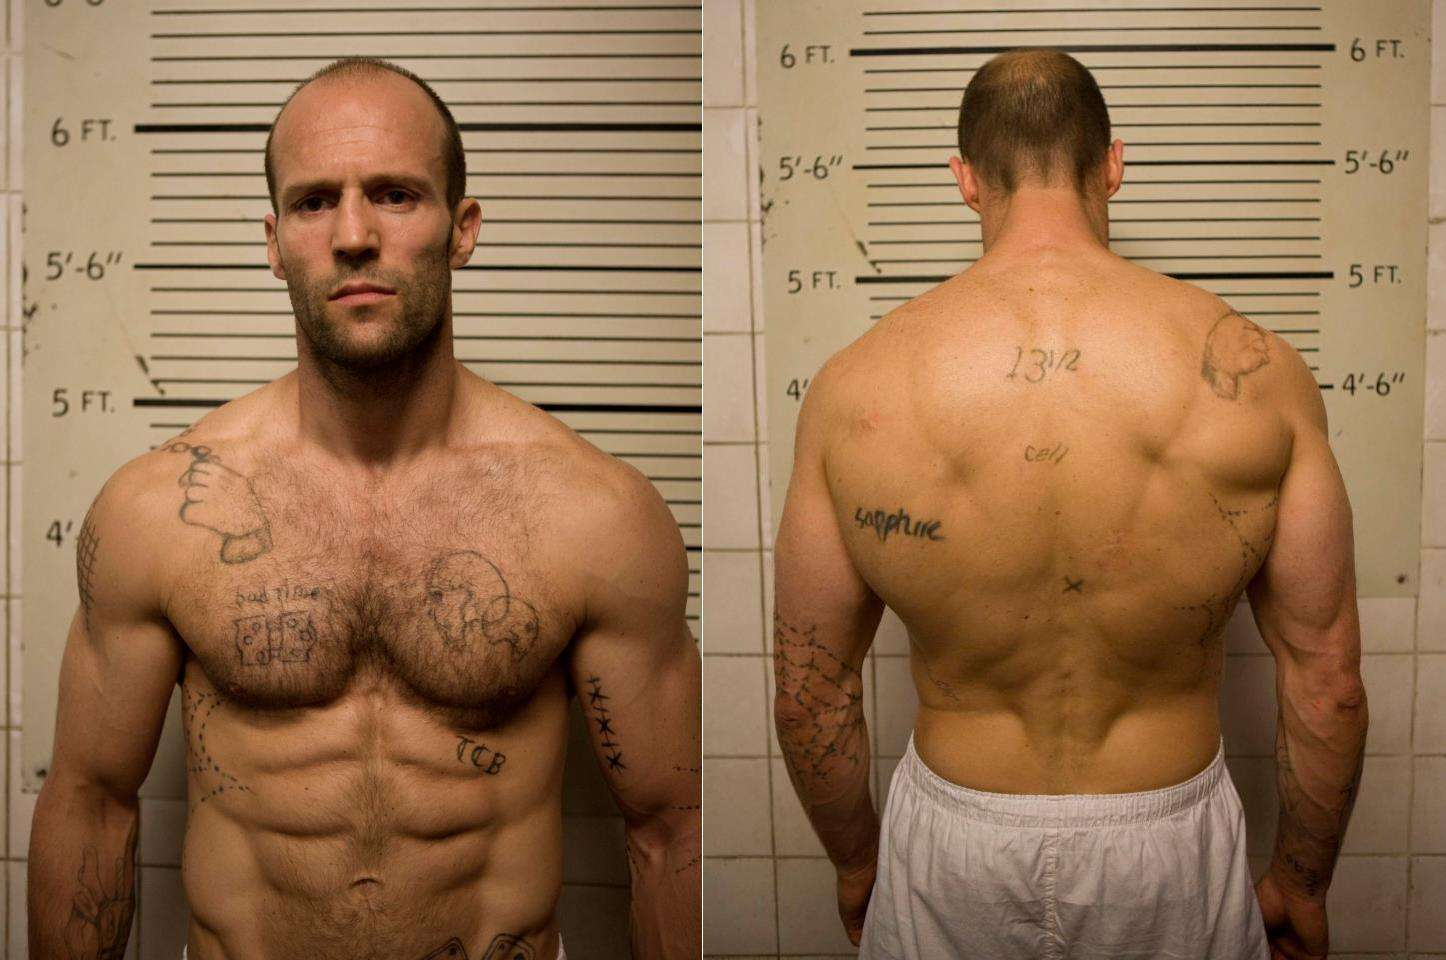 The Top 11 Most Jacked Movie Bodies - 1M